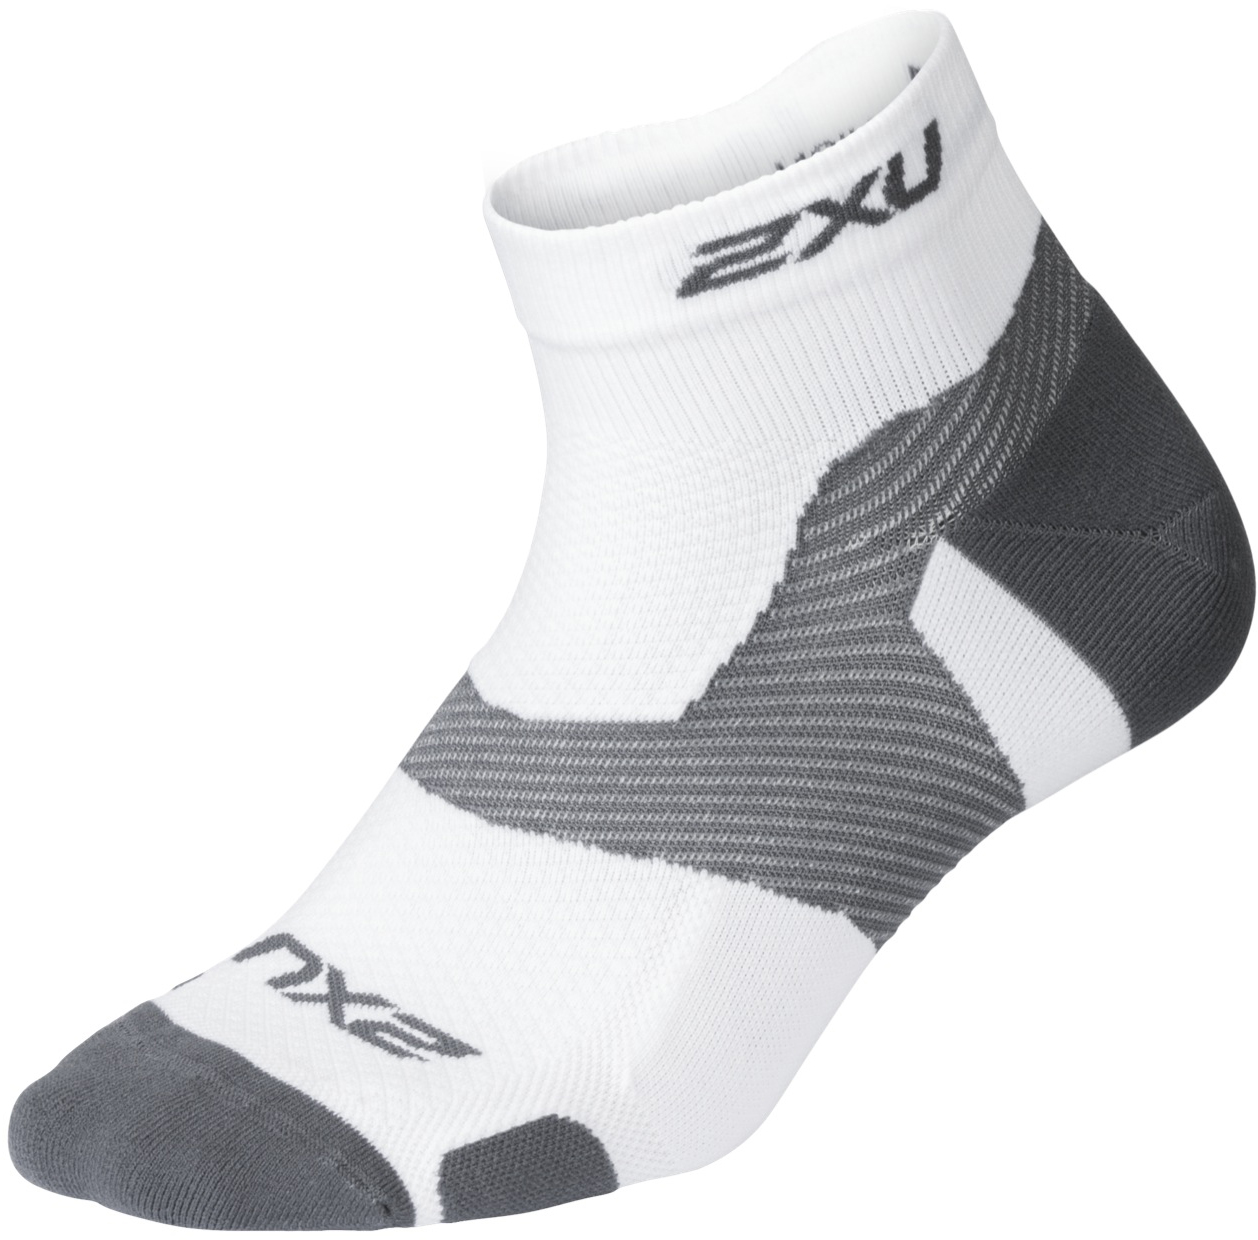 2XU Vectr Light Cushion 1/4 Crew Socks | Socks